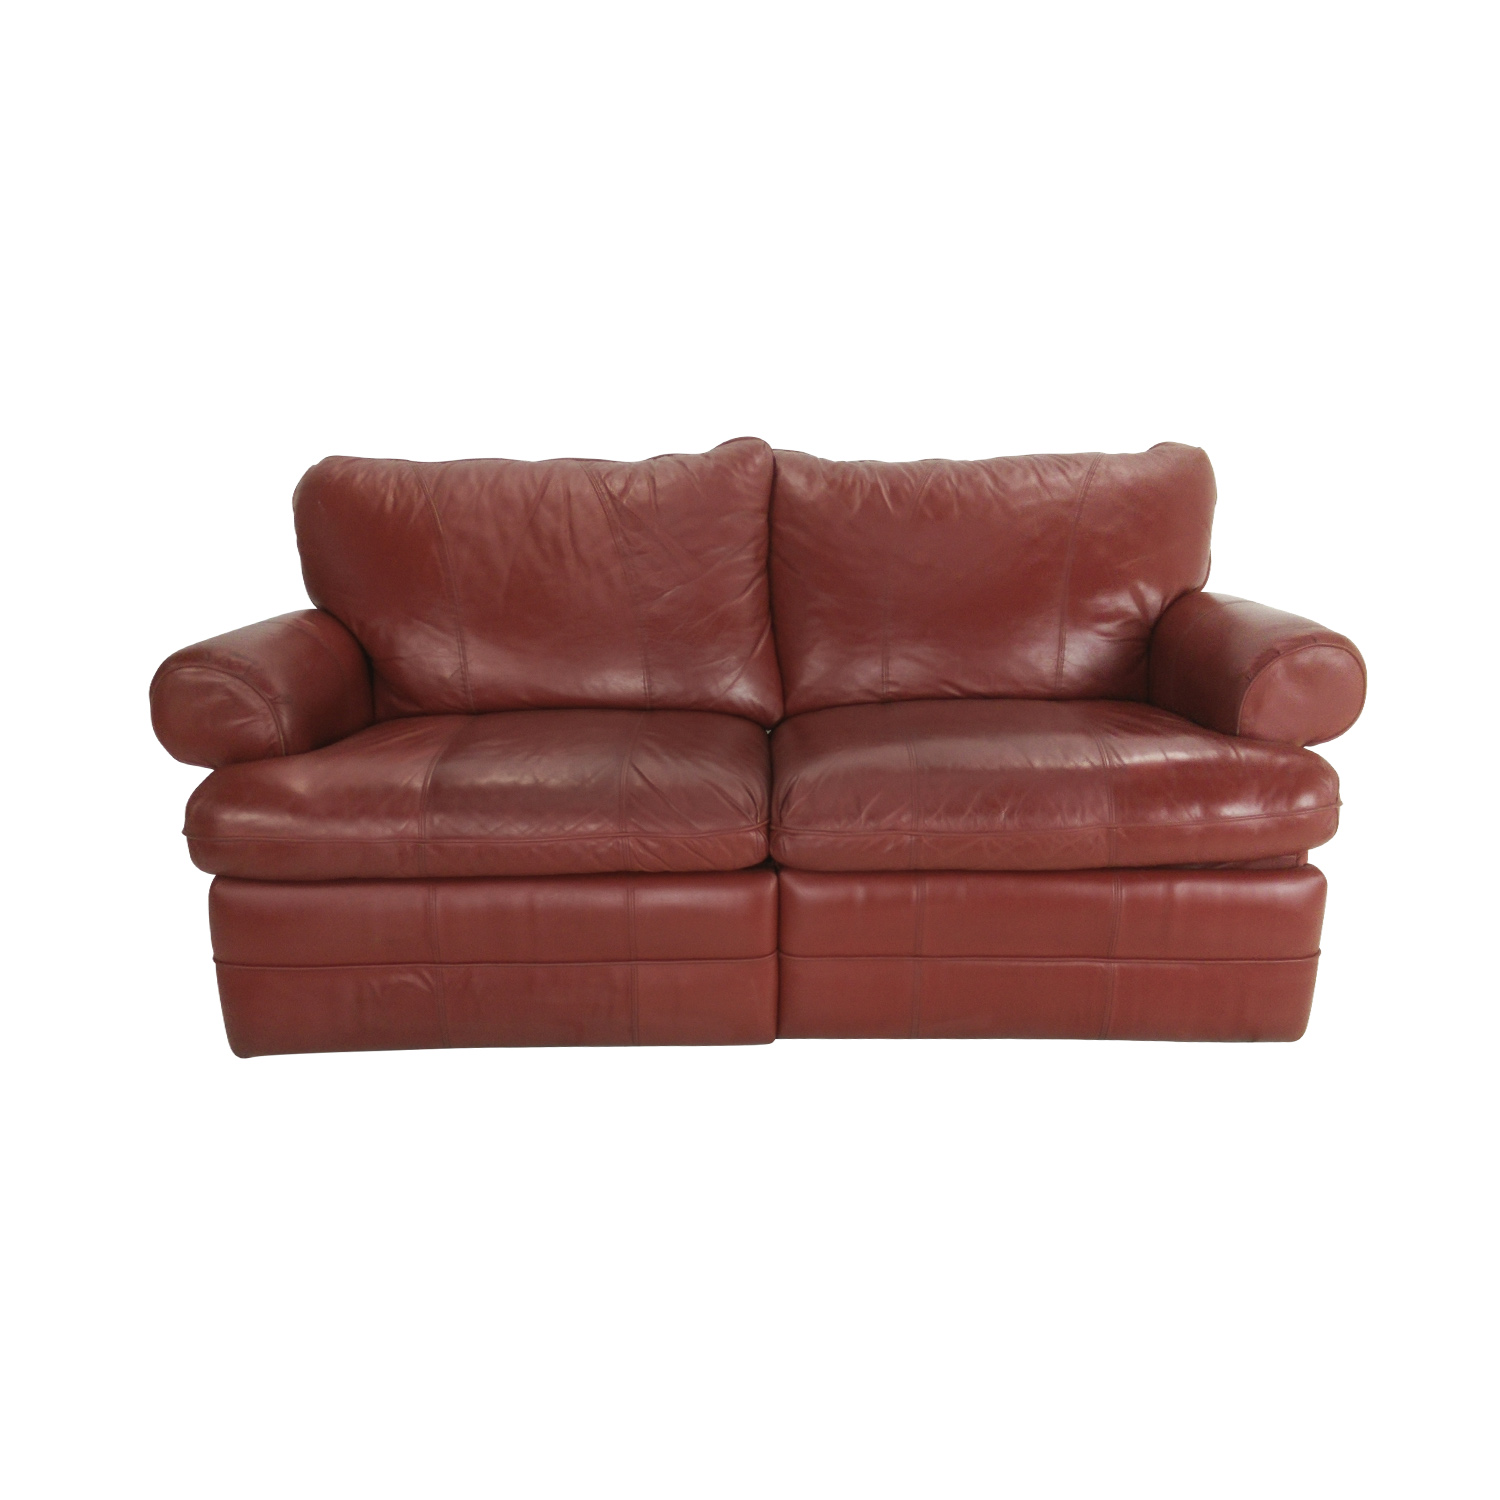 84 off la z boy la z boy red recliner couch sofas for Classic loveseat